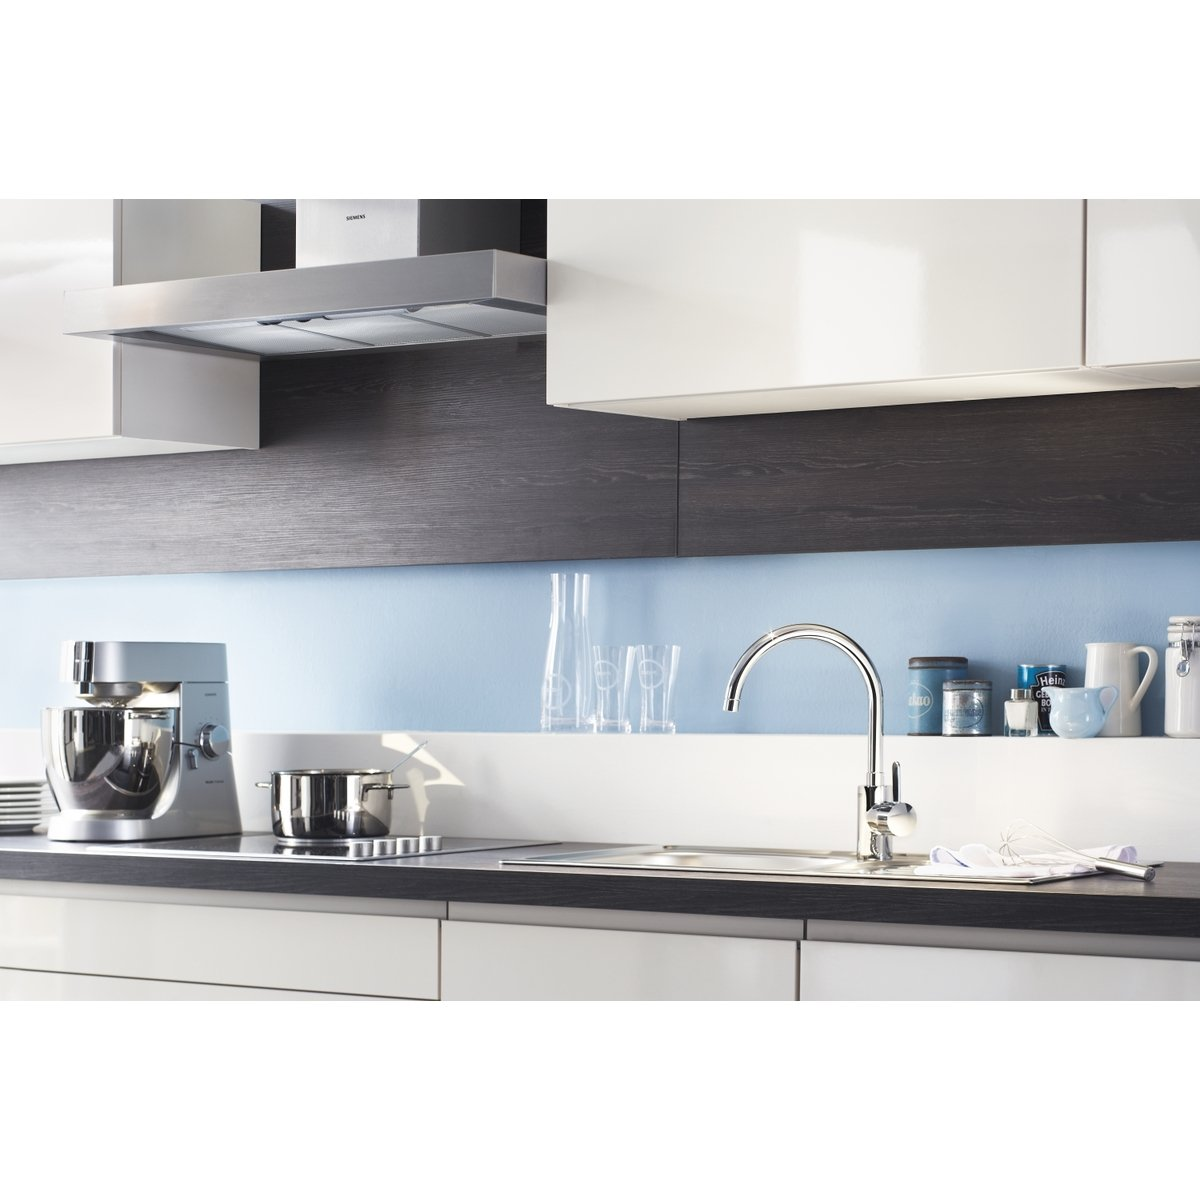 grohe eurosmart cosmopolitan robinet de cuisine eco avec bec haut tournant chrome 3284300e. Black Bedroom Furniture Sets. Home Design Ideas